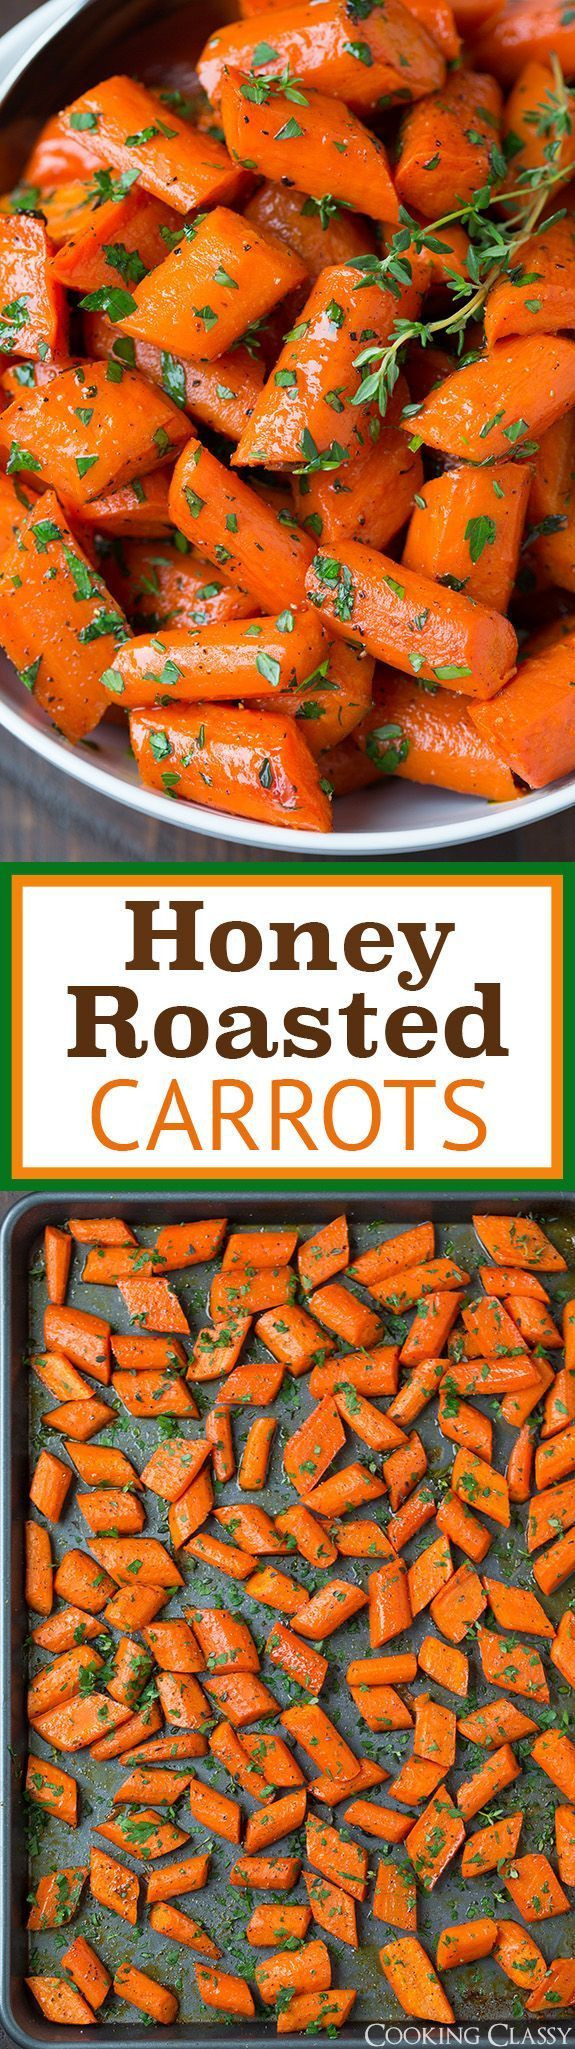 Thanksgiving Carrot Side Dishes  Check out Honey Roasted Carrots It s so easy to make